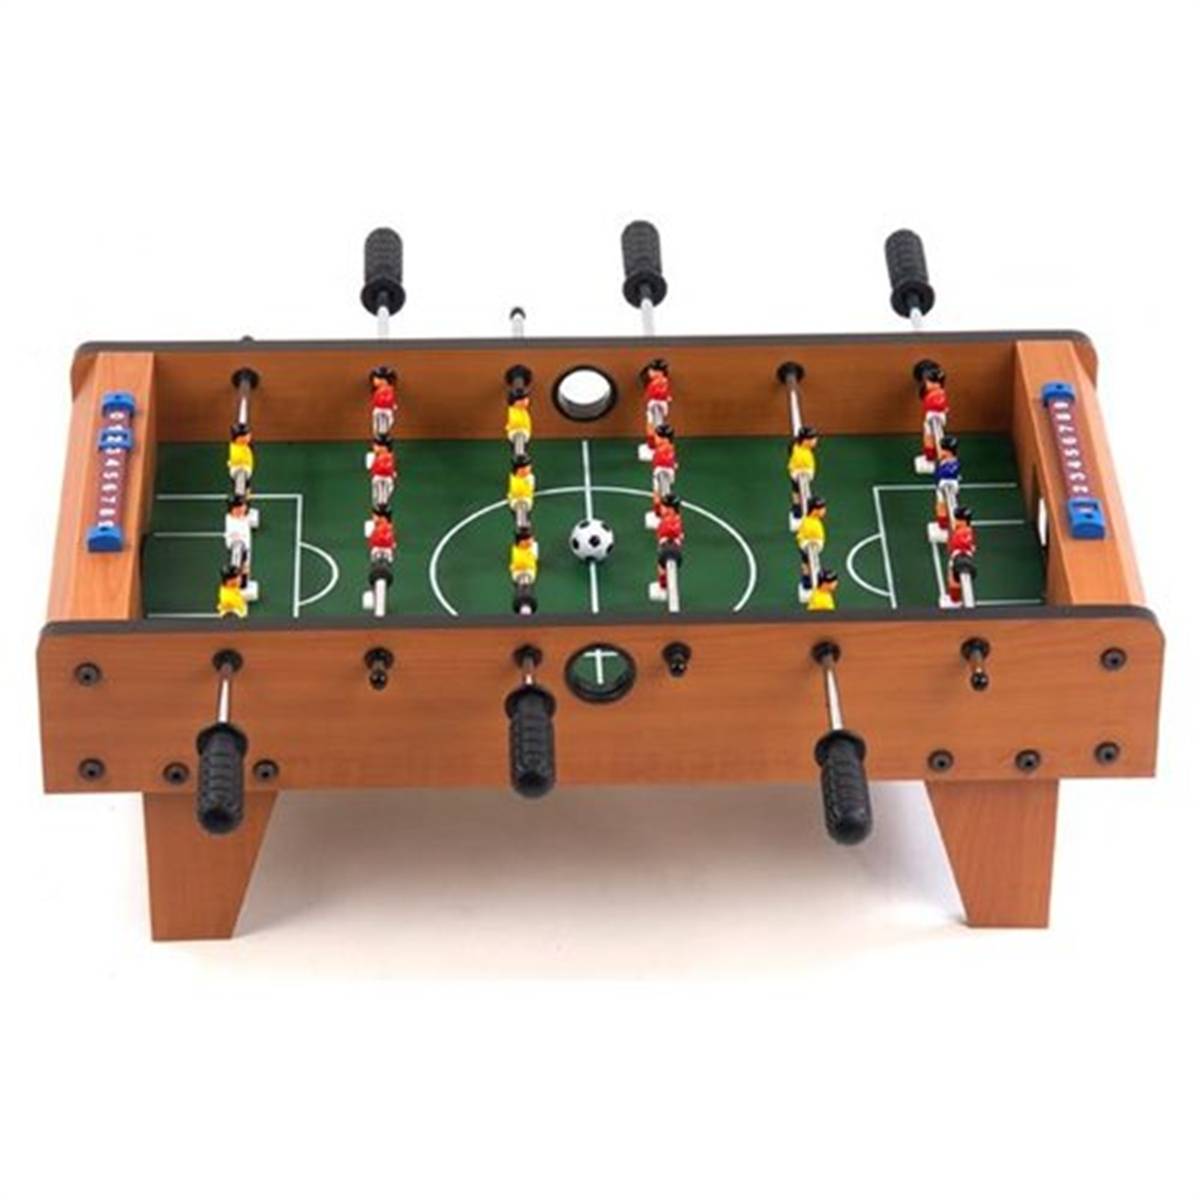 DELUXE TABLE TOP MINI FOOTBALL TABLE FOOSBALL PLAYERS FAMILY GAME TOY XMAS  GIFT | EBay